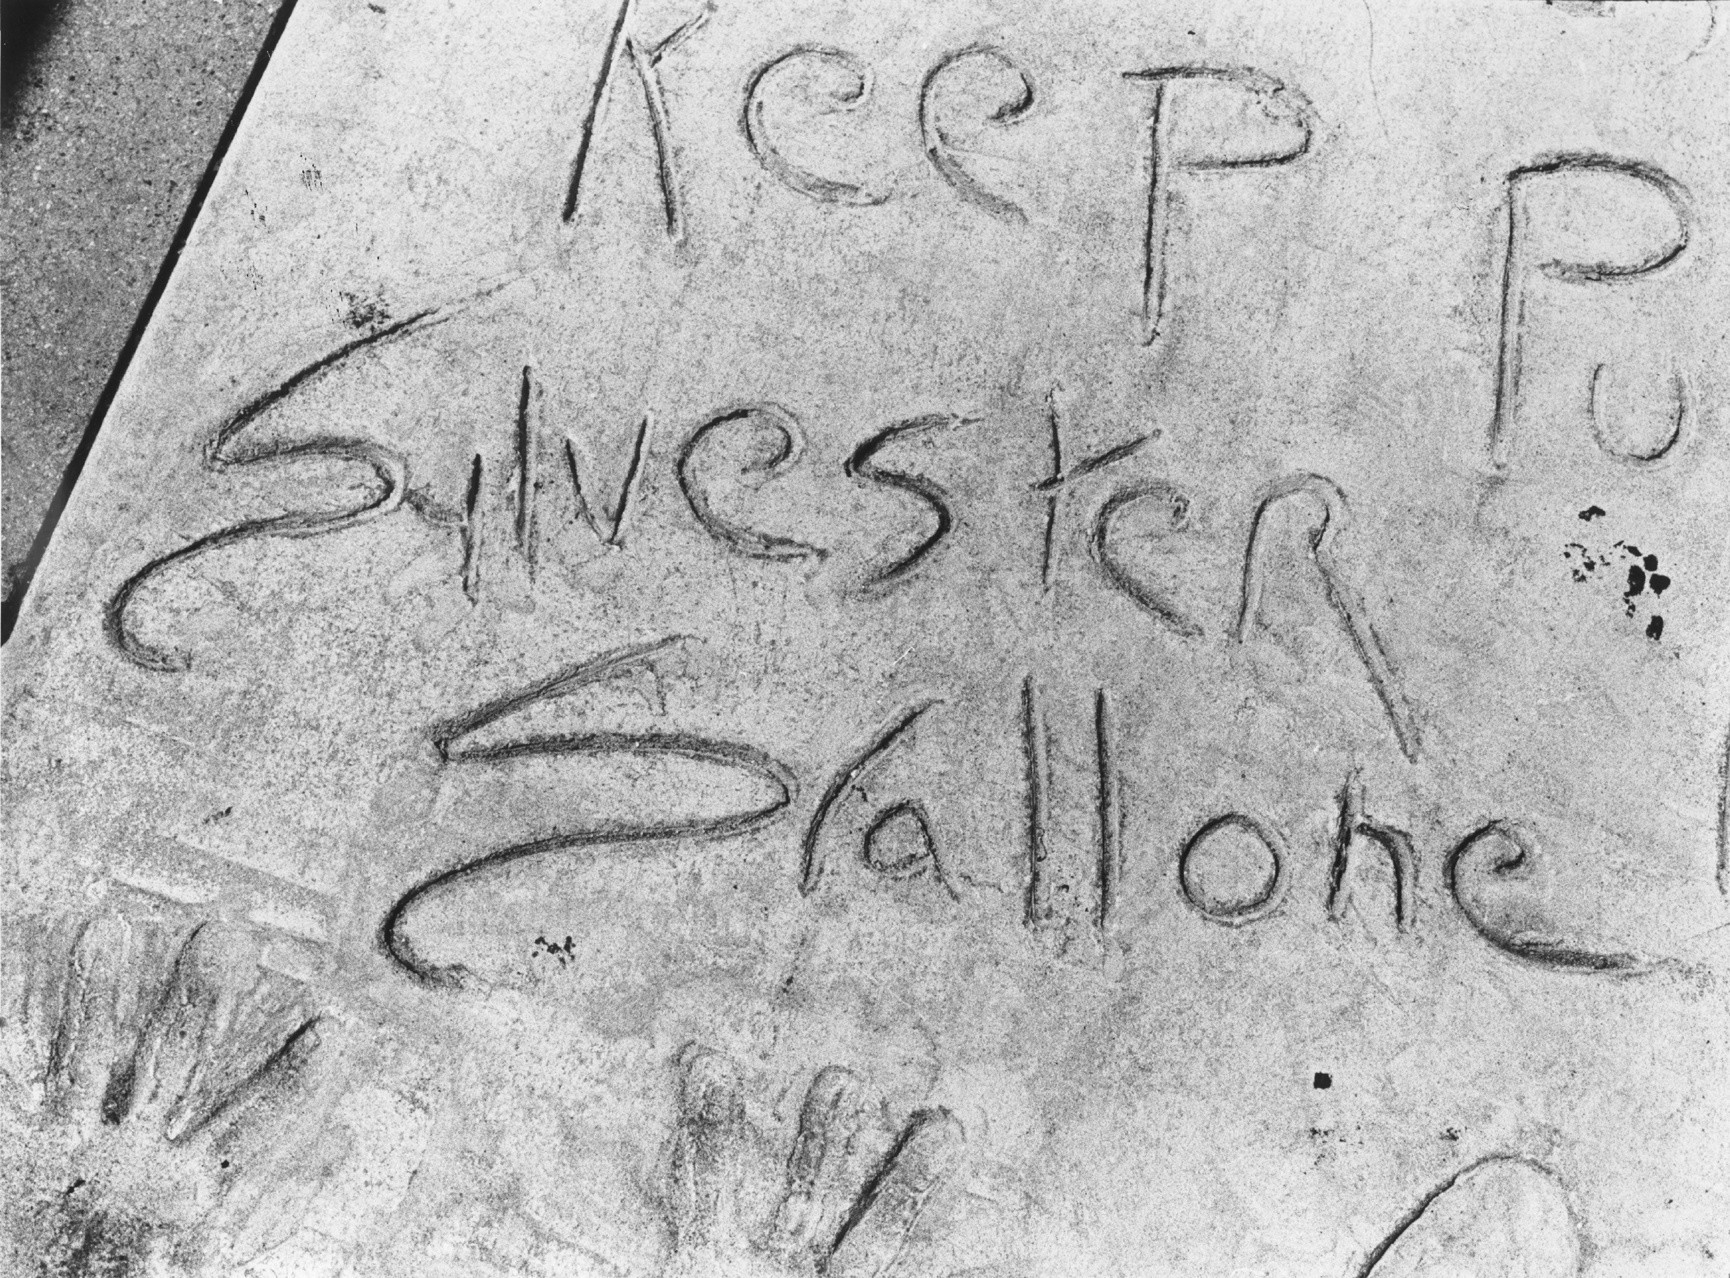 Sylvester Stallone's misspelled named etched in wet concrete in front of Mann's Chinese Theater.